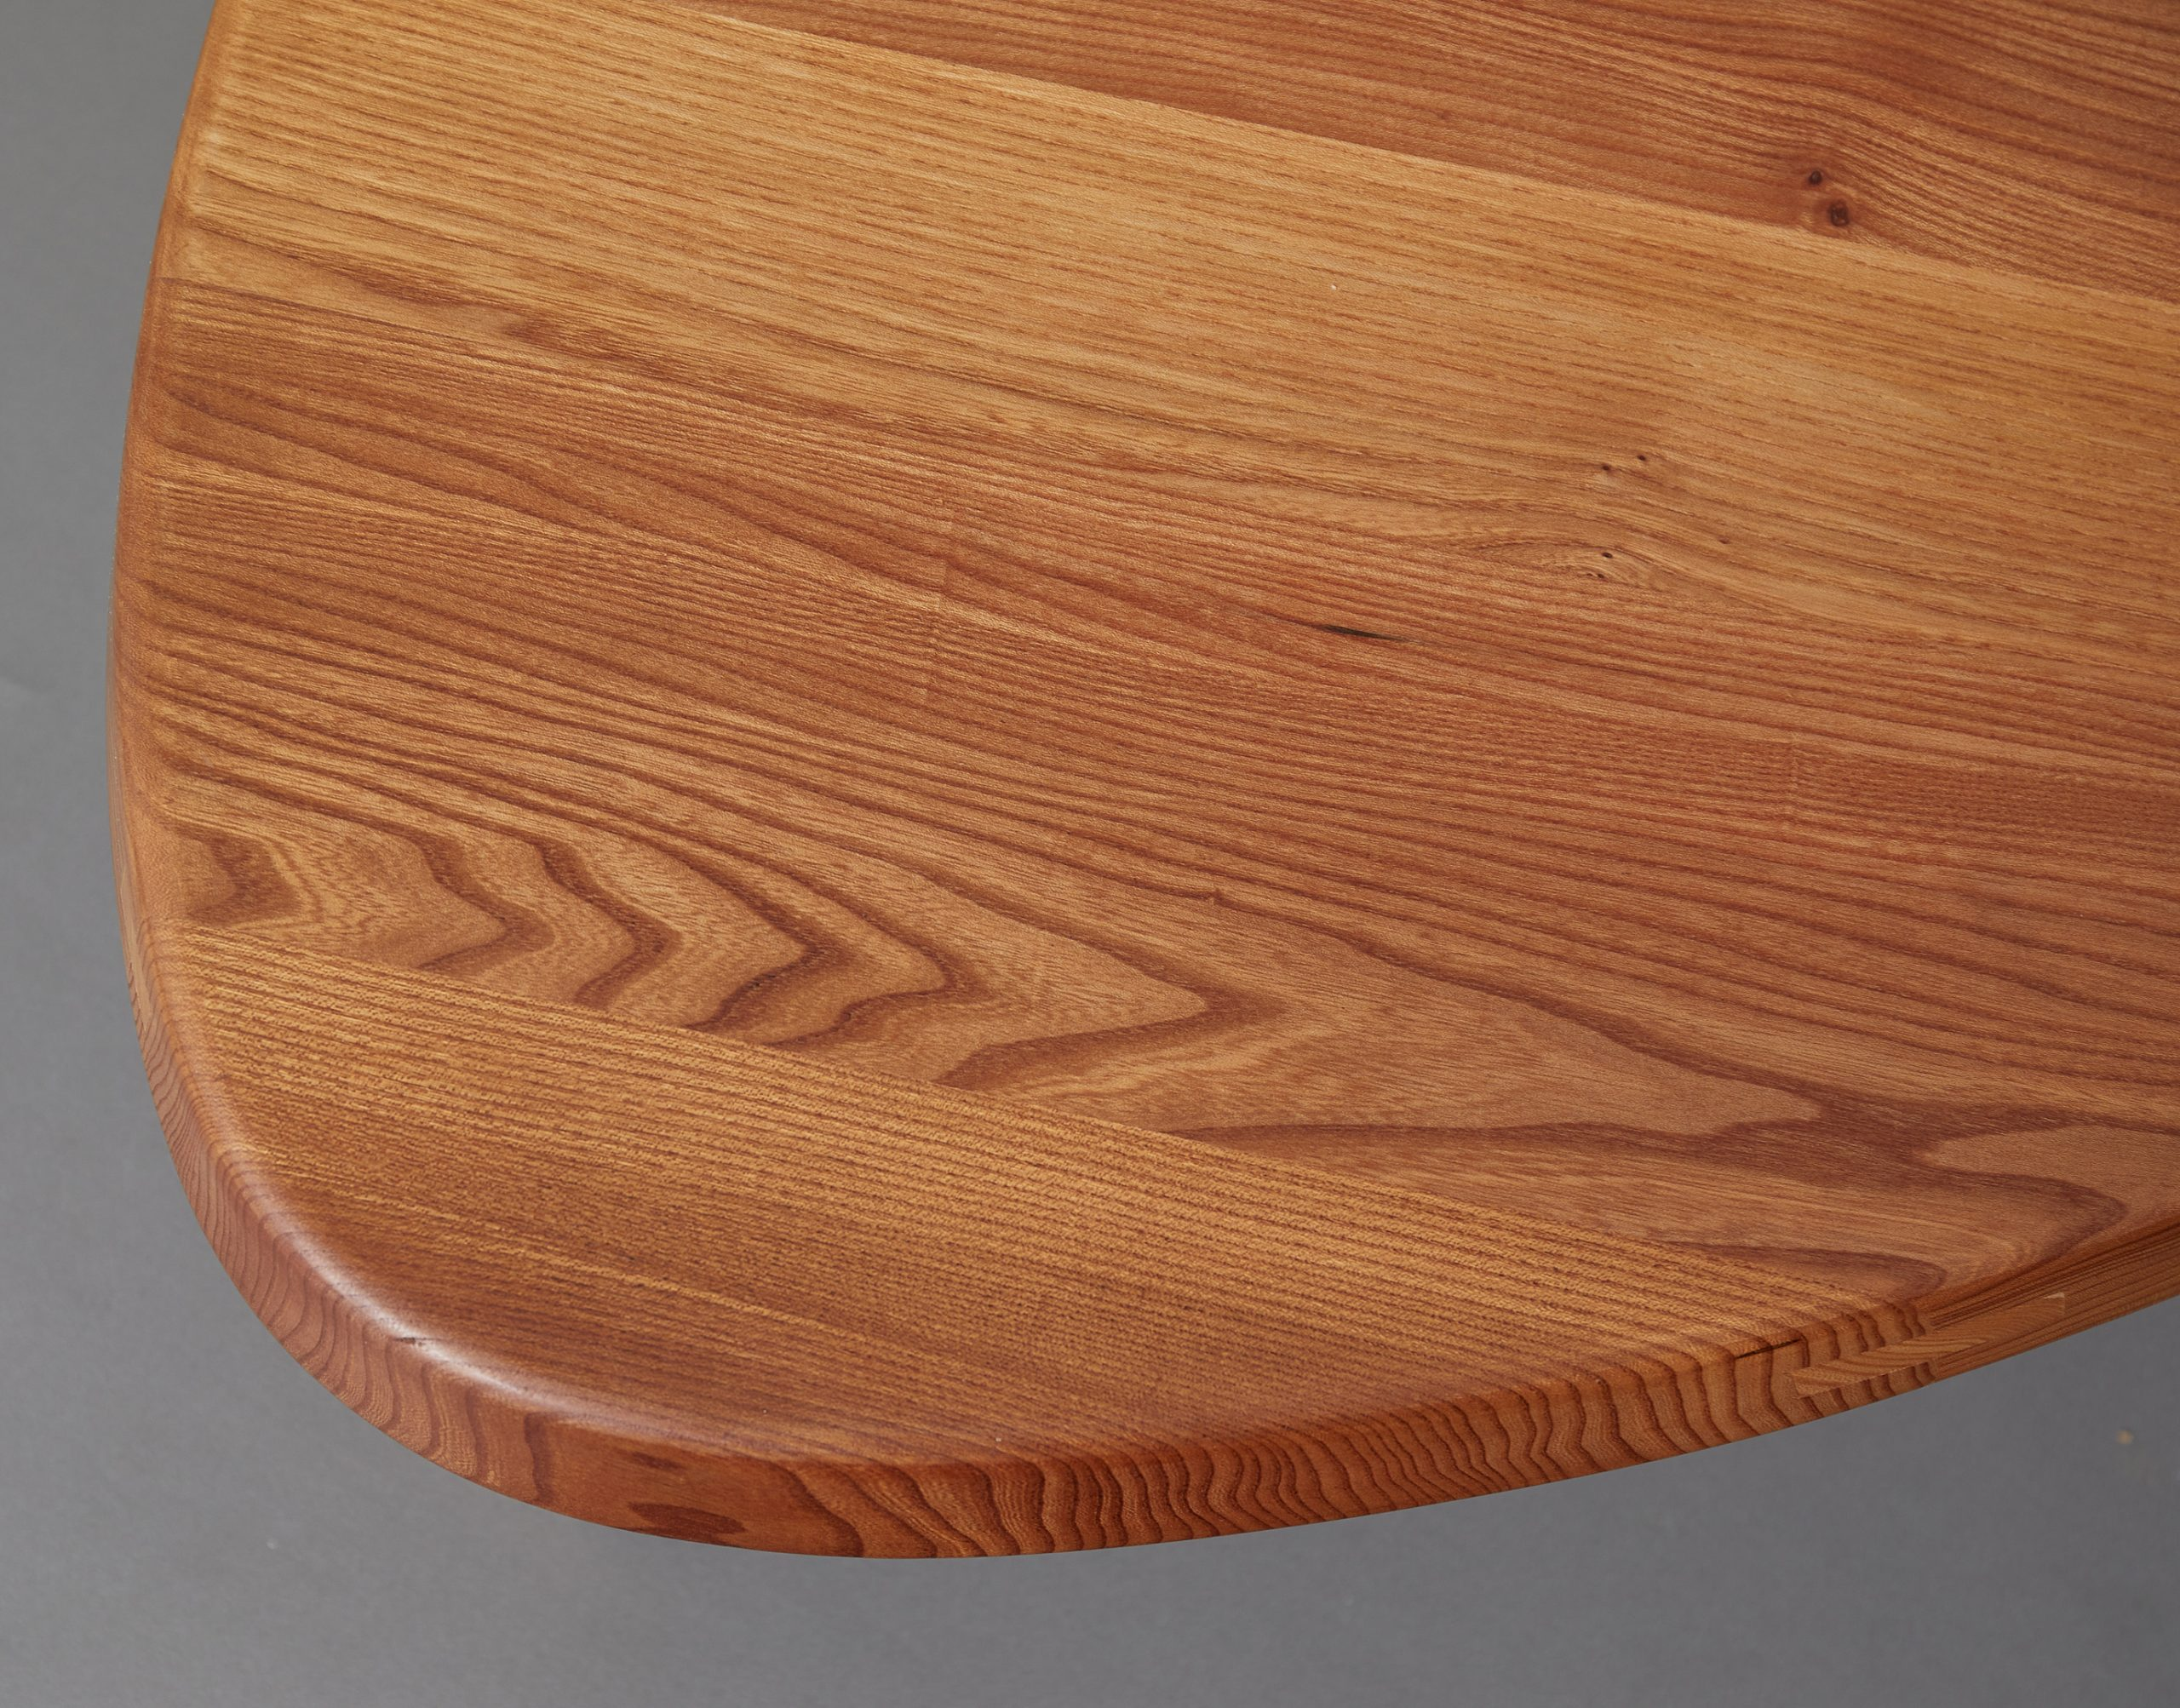 t23-table-by-pierre-chapo-image-02